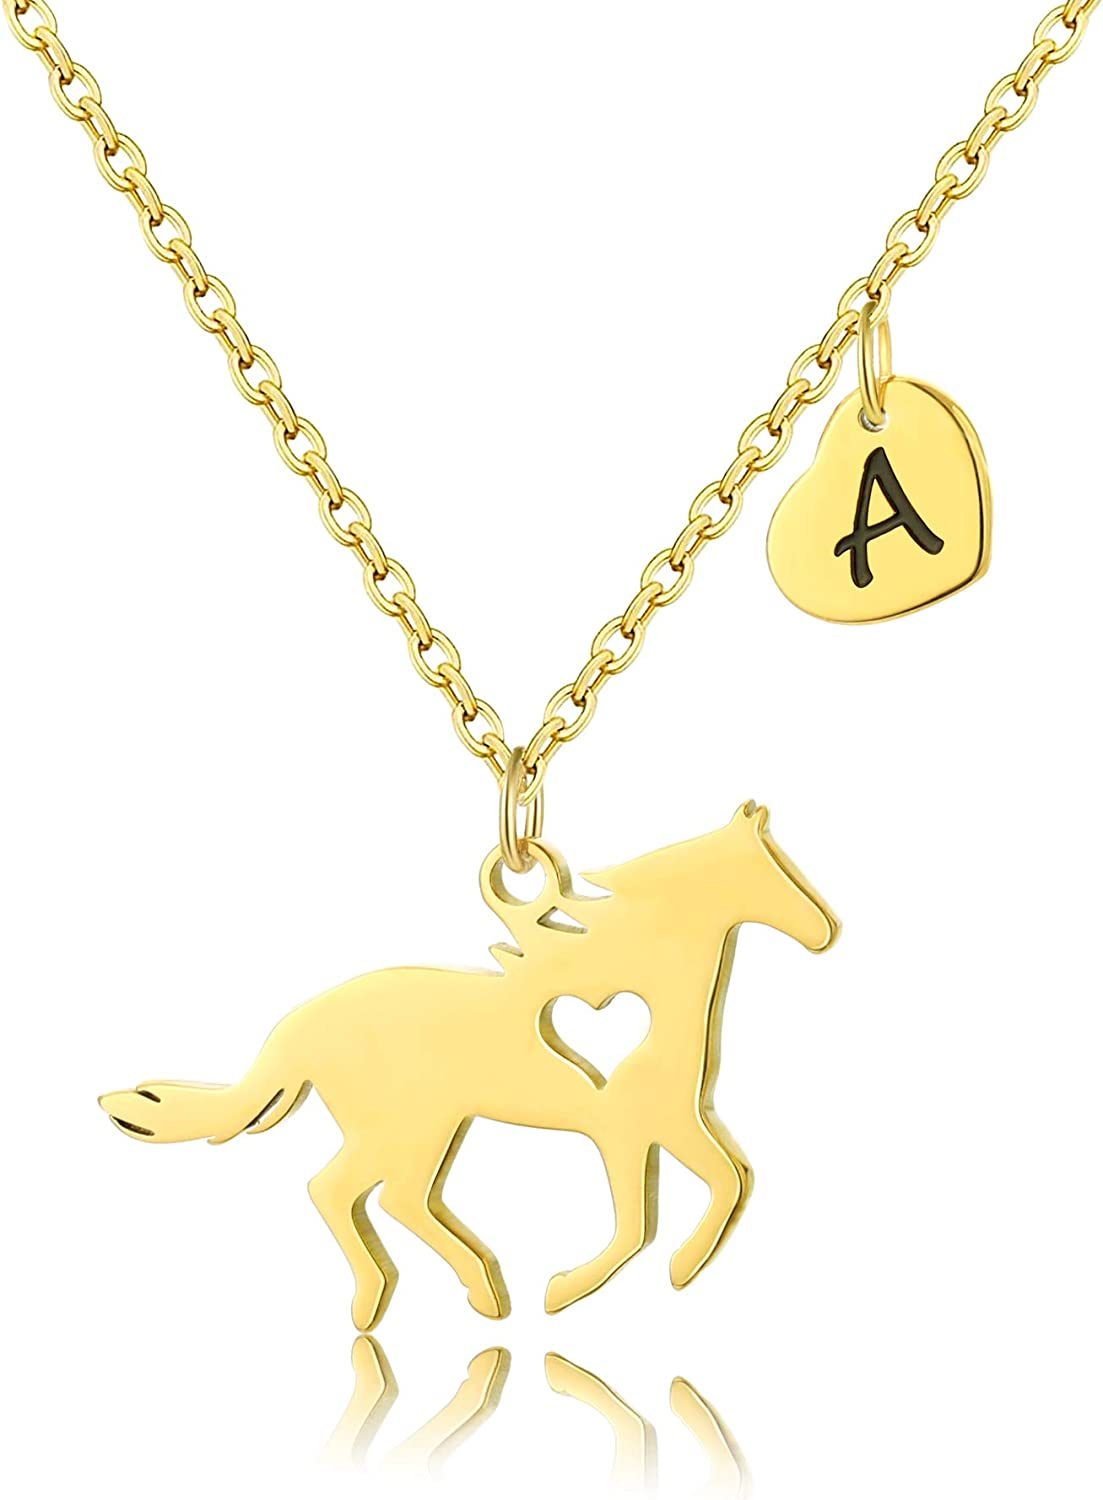 SHIWE Stainless SALENEW very List price popular Steel Gold Horse Necklace Women H Initial 26 for